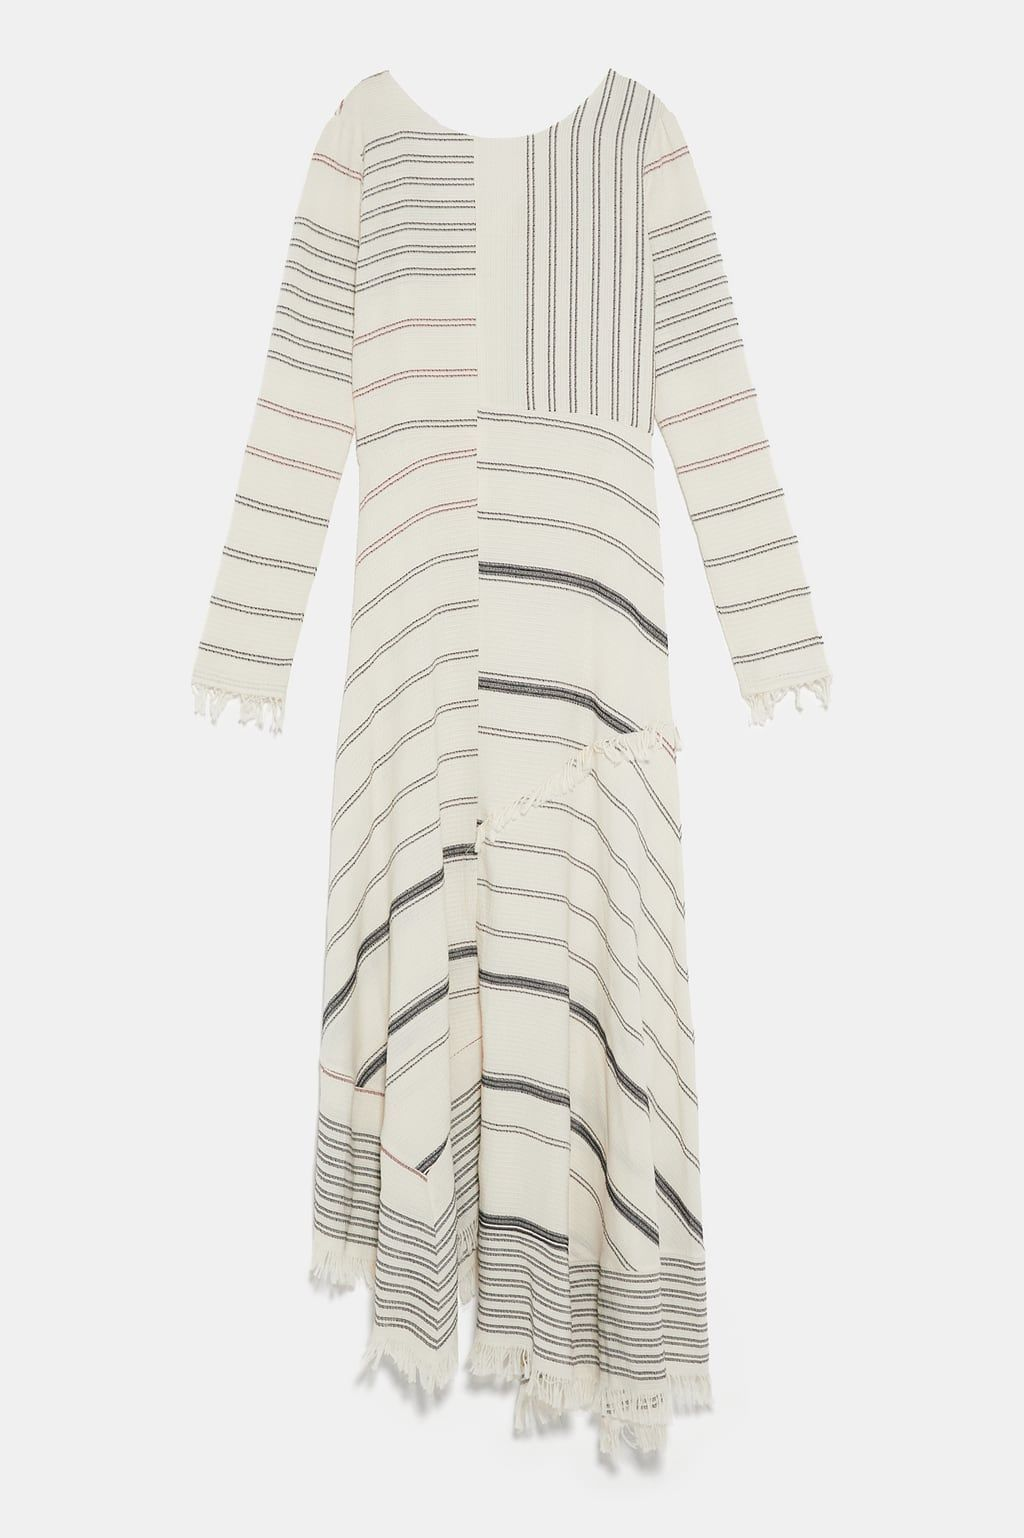 6d54a69bcd Limited edition zara studio striped dress in 2019 | Garb | Striped ...